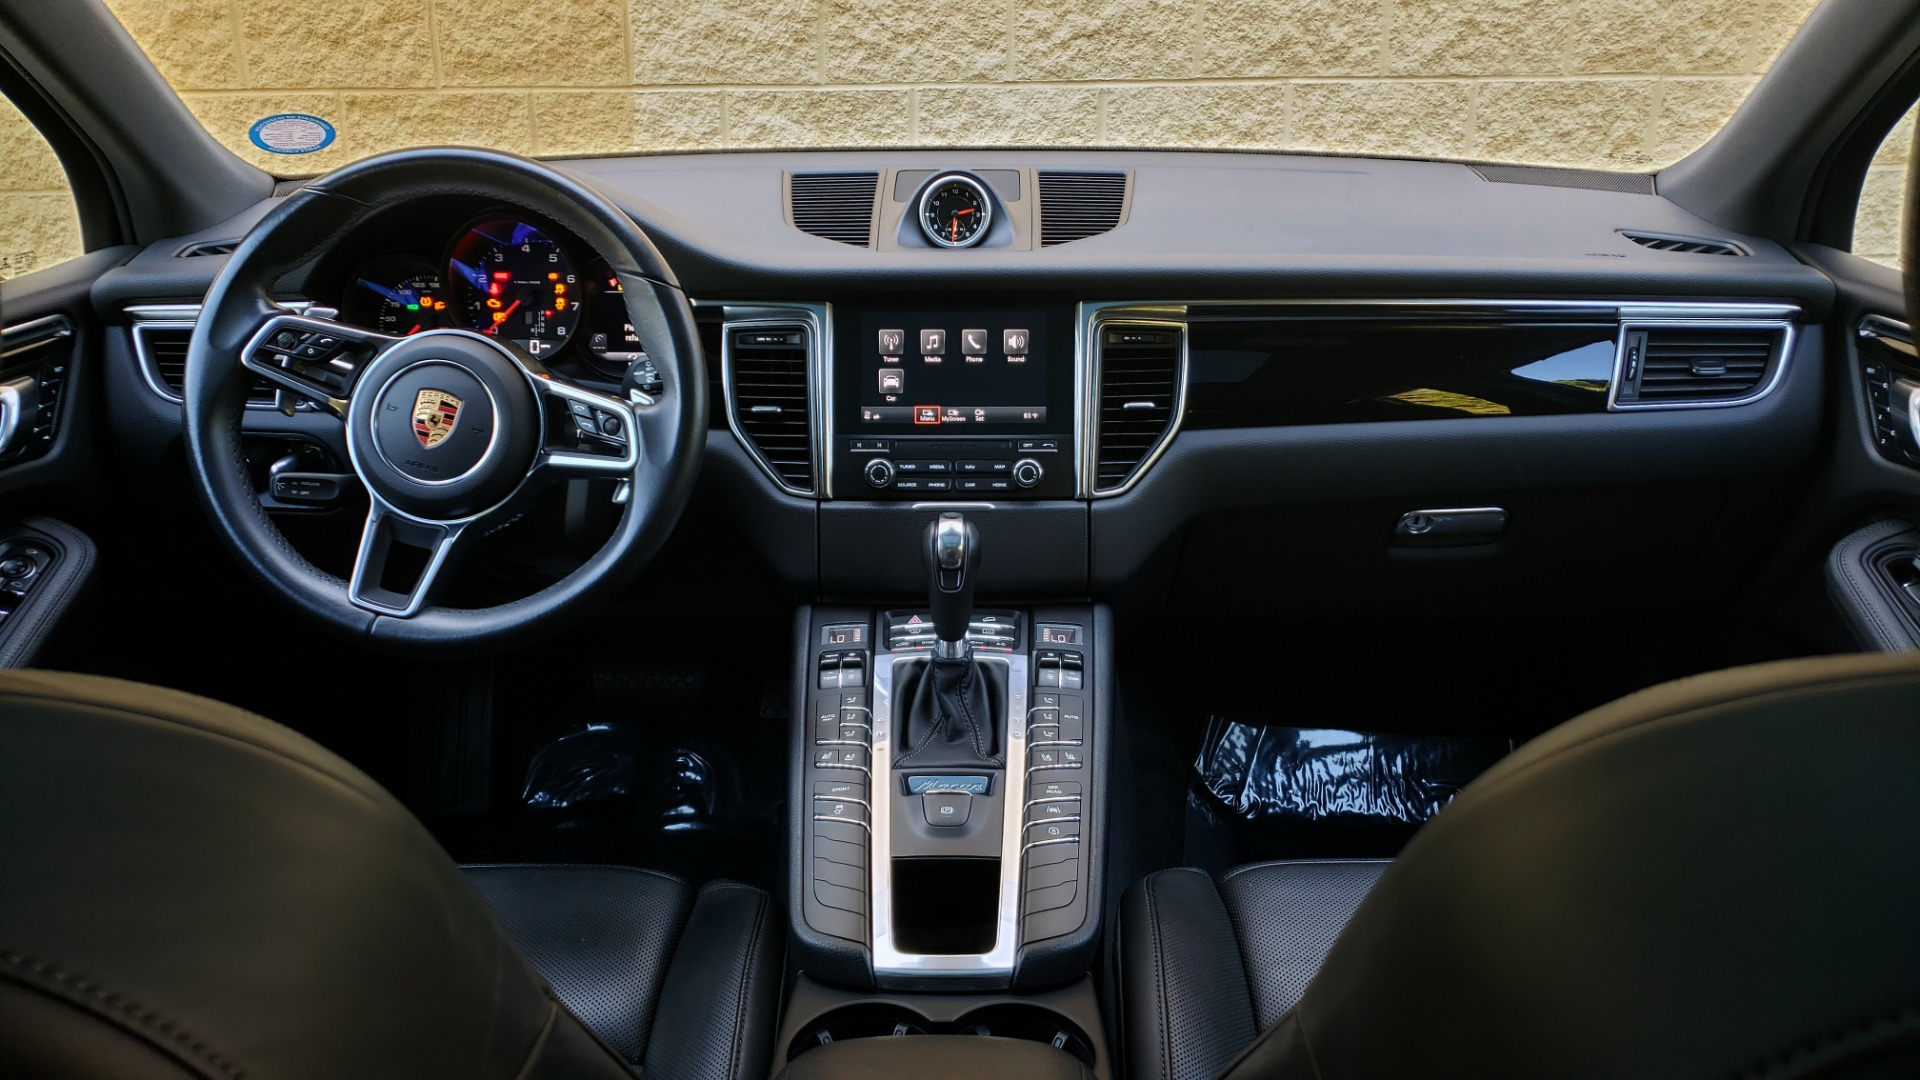 Used 2018 Porsche MACAN PREMIUM PKG PLUS / NAV / PDK / BOSE / REARVIEW for sale Sold at Formula Imports in Charlotte NC 28227 83